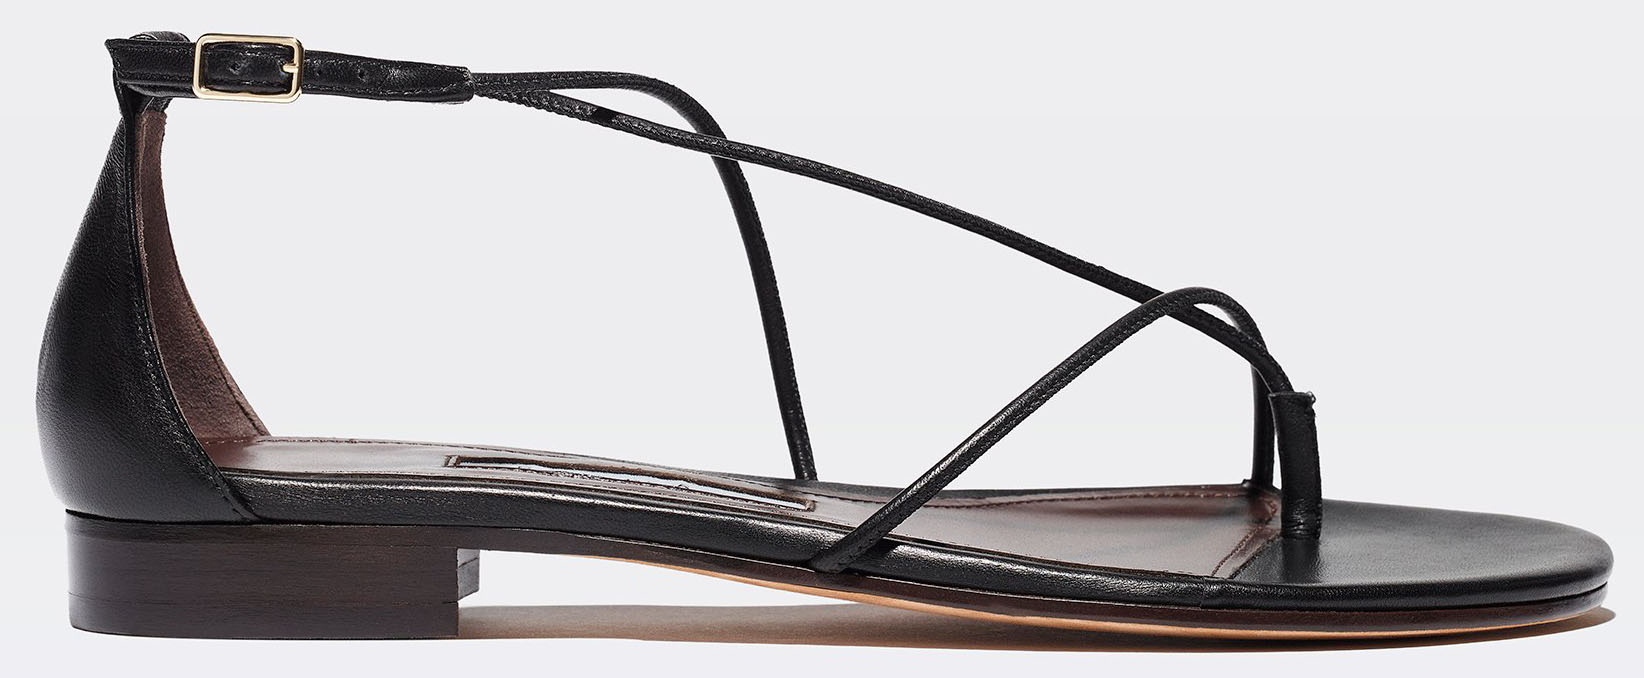 Emme Parsons' String sandal features nappa leather cords that curve asymmetrically around the instep